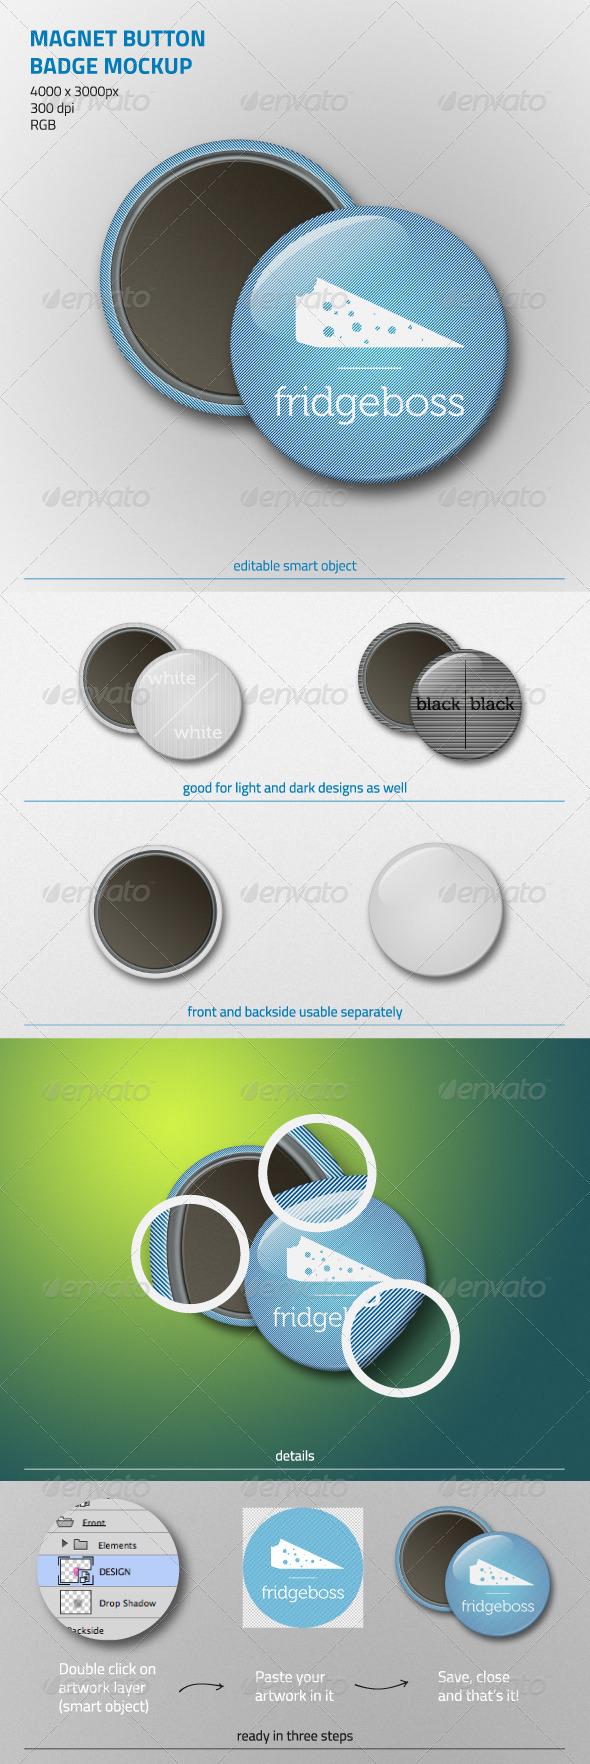 Magnet Button Badge Mockup - Miscellaneous Print